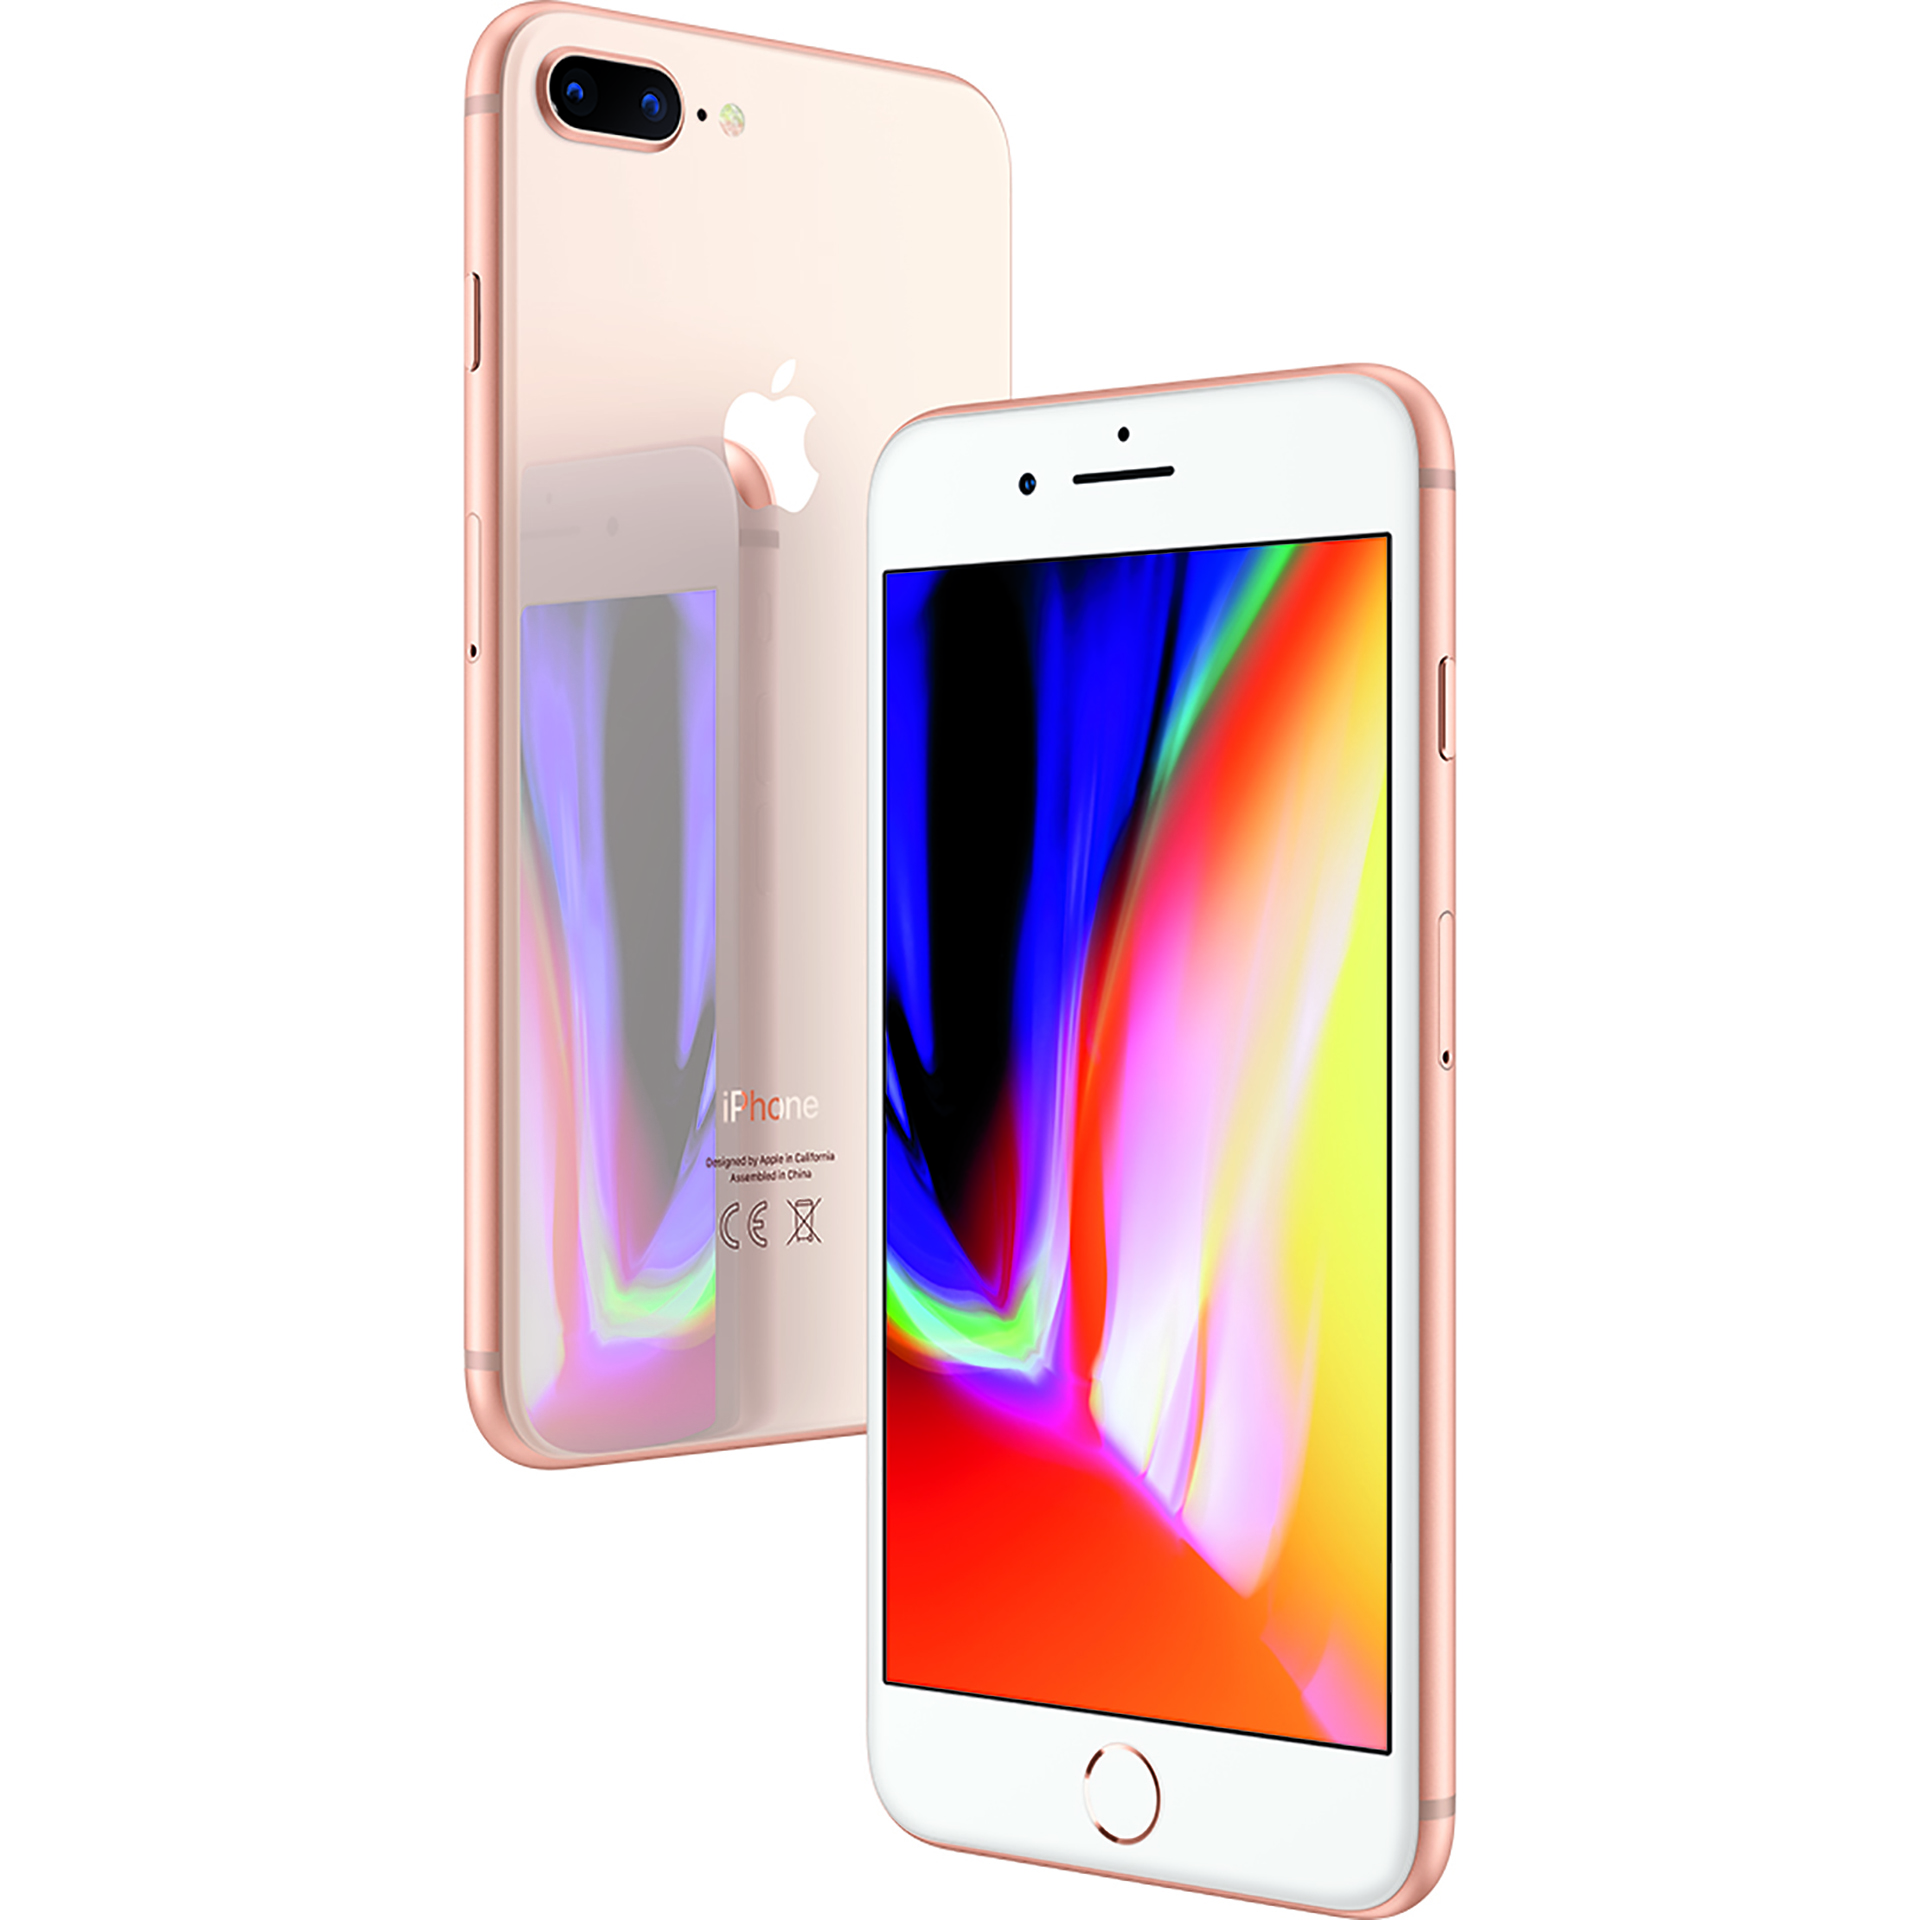 mobiiltelefon Apple iPhone 8 Plus 64 GB (kuldne)